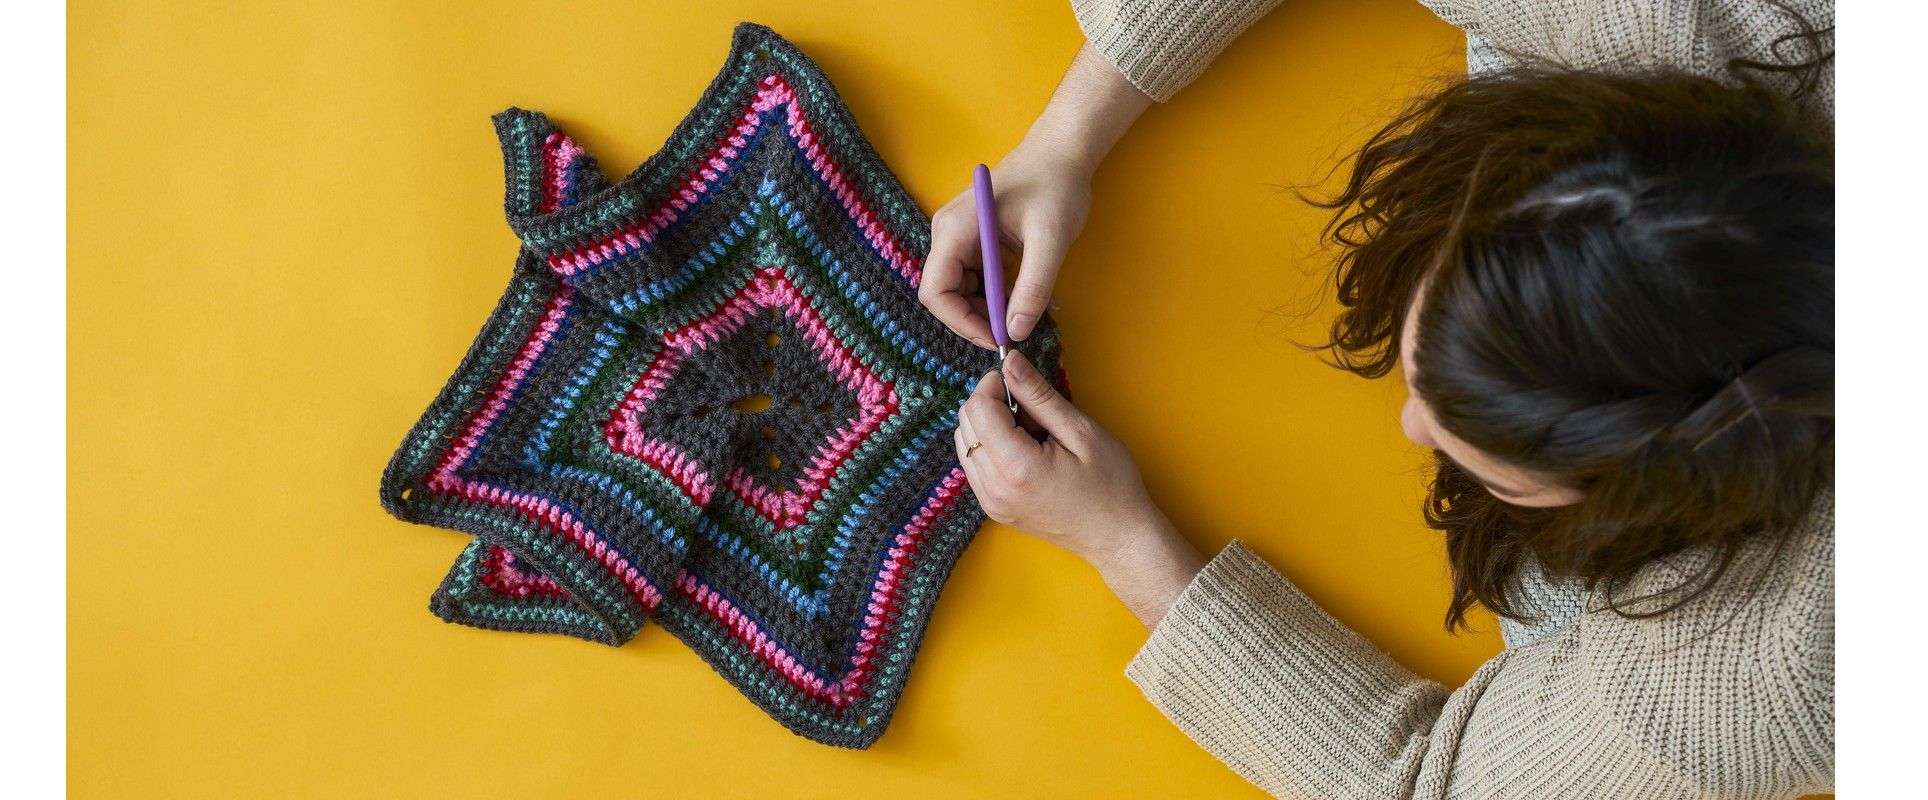 Photo of 27 free crochet patterns for beginners | LoveCrafts, LoveKnitting's New Home